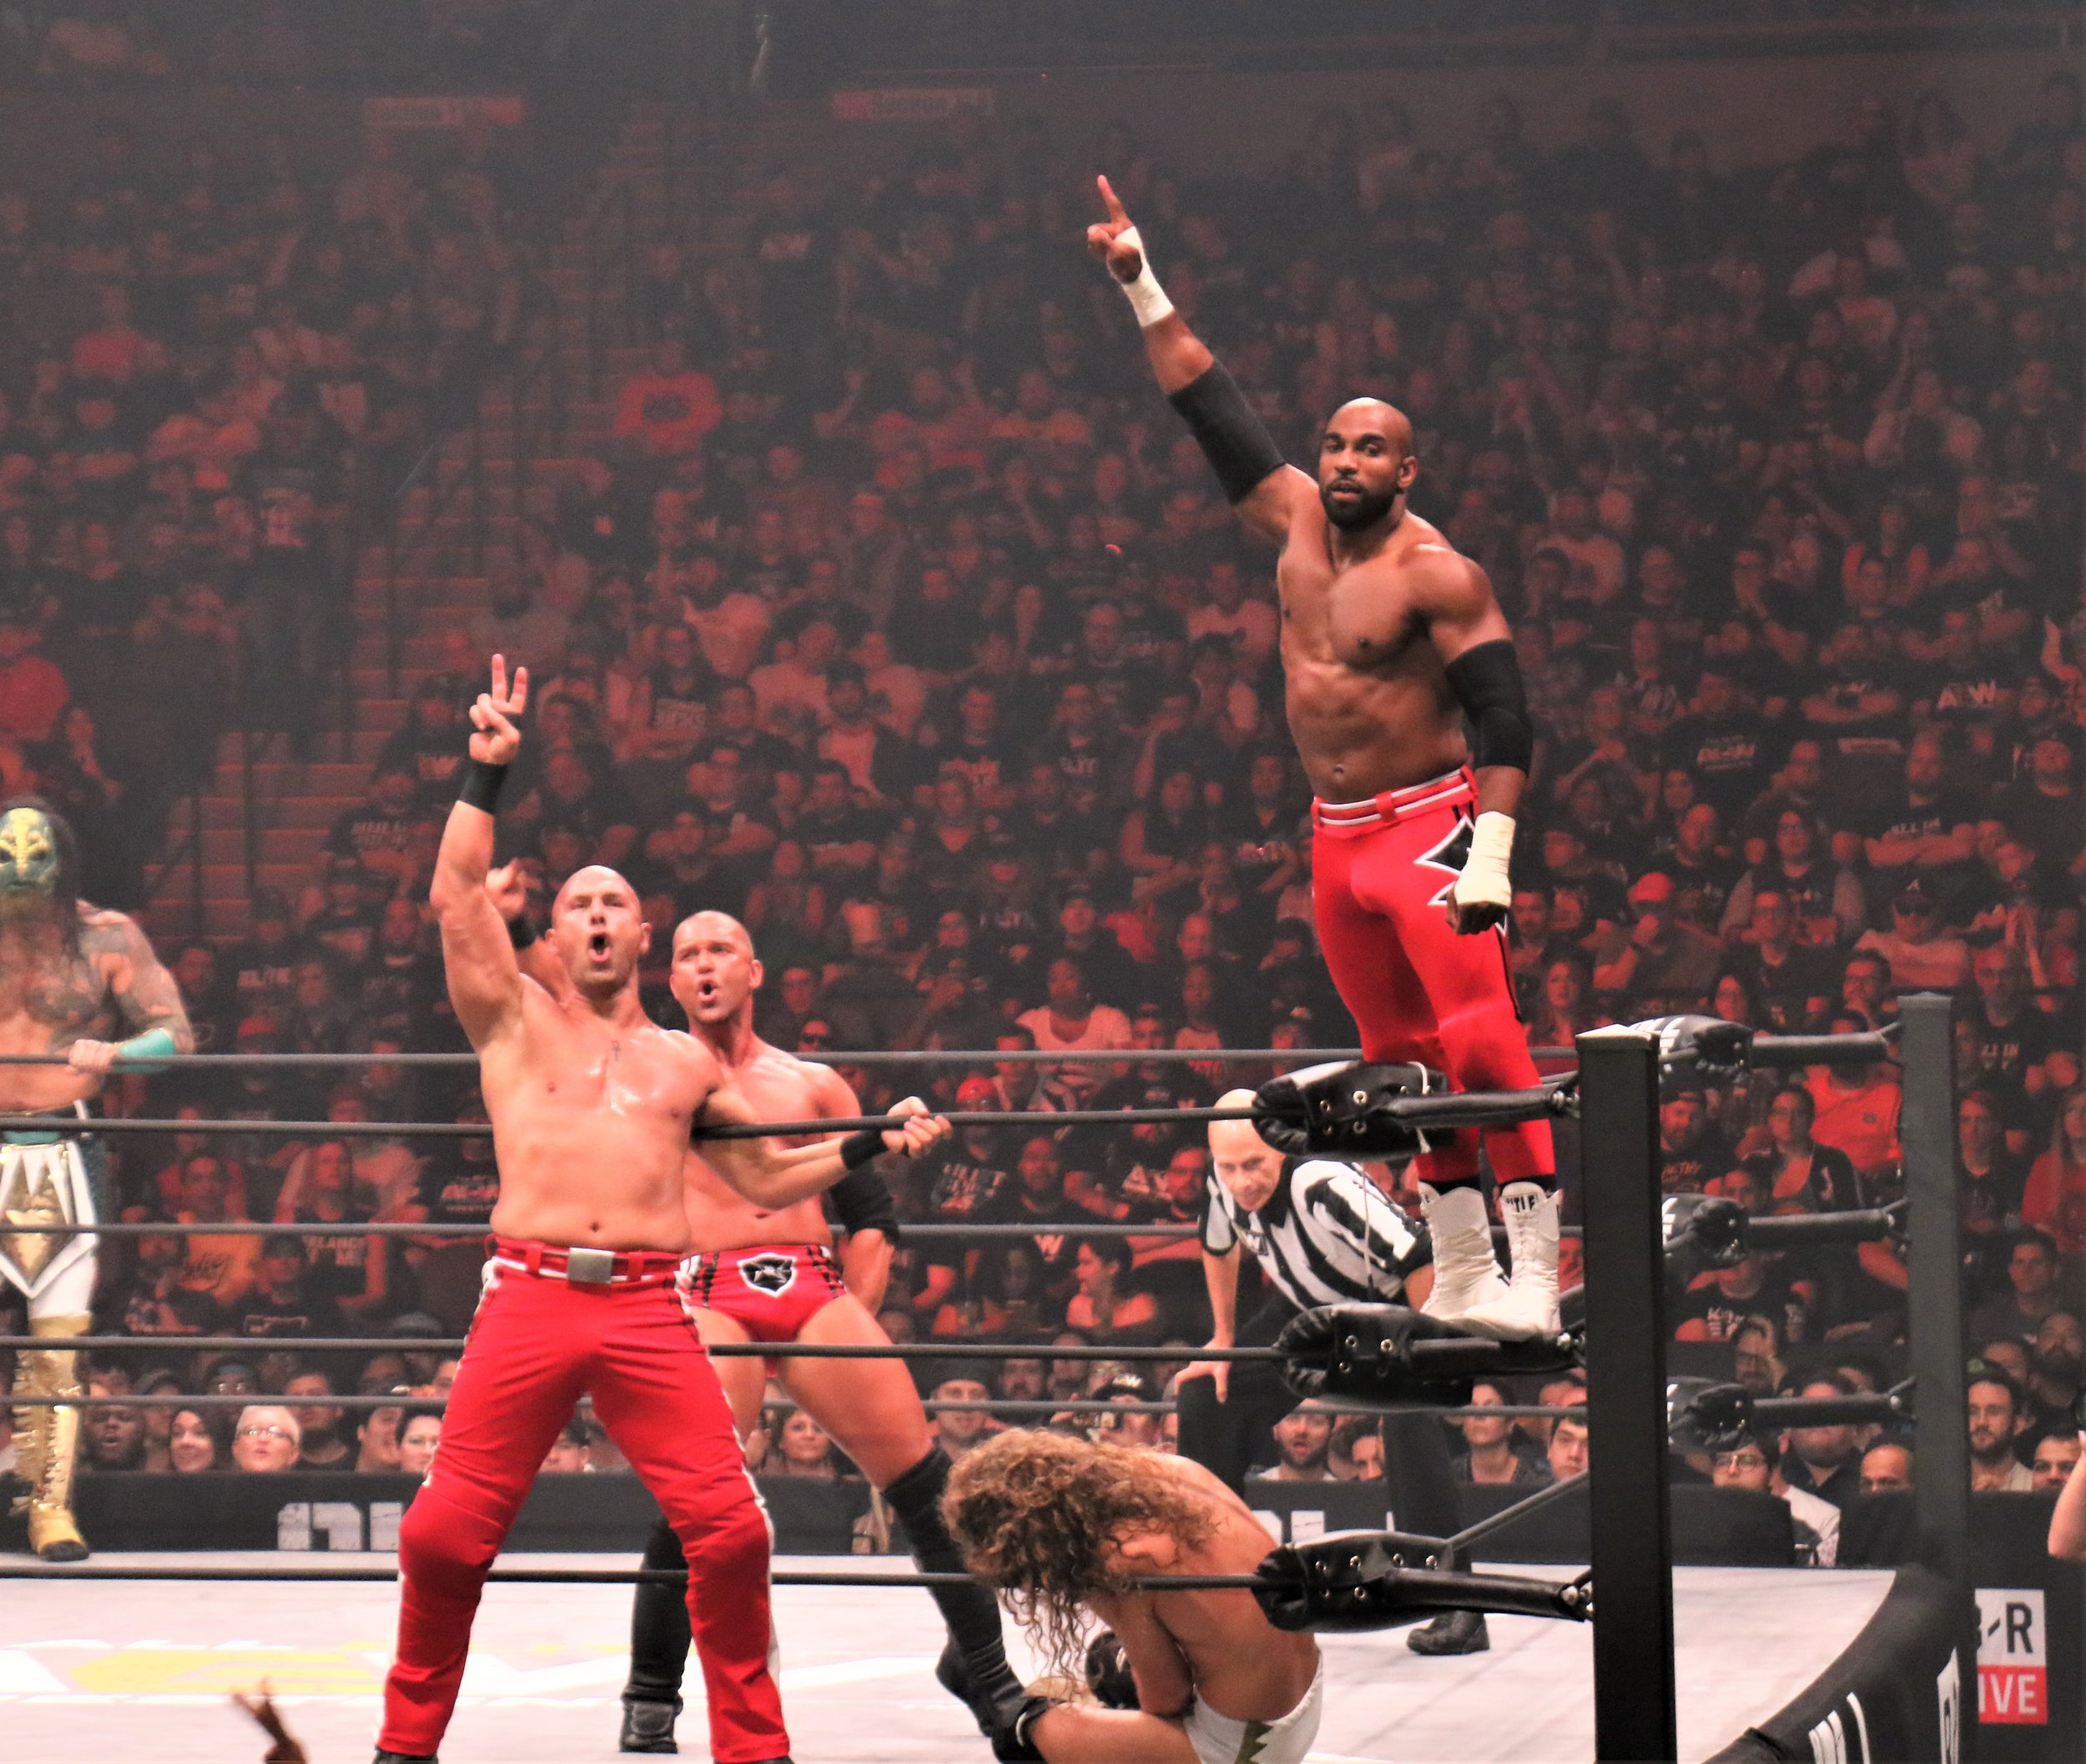 SCU takes a moment to celebrate during the six-man tag team match.